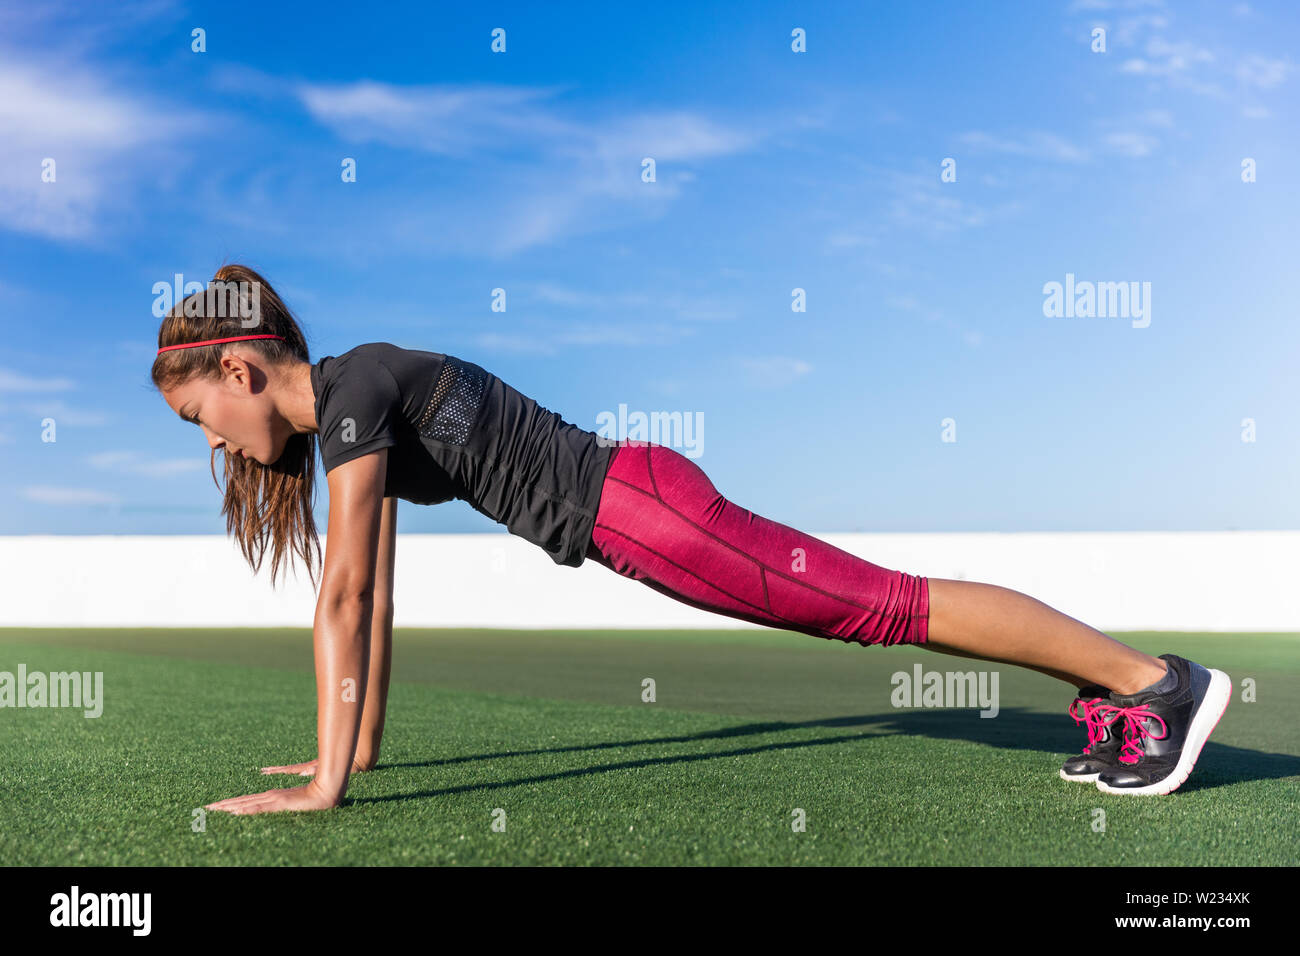 Fitness woman planking doing the bodyweight exercise for core strength training. Active girl practicing the yoga plank pose for abdominal muscles in summer outdoors living a fit life. - Stock Image